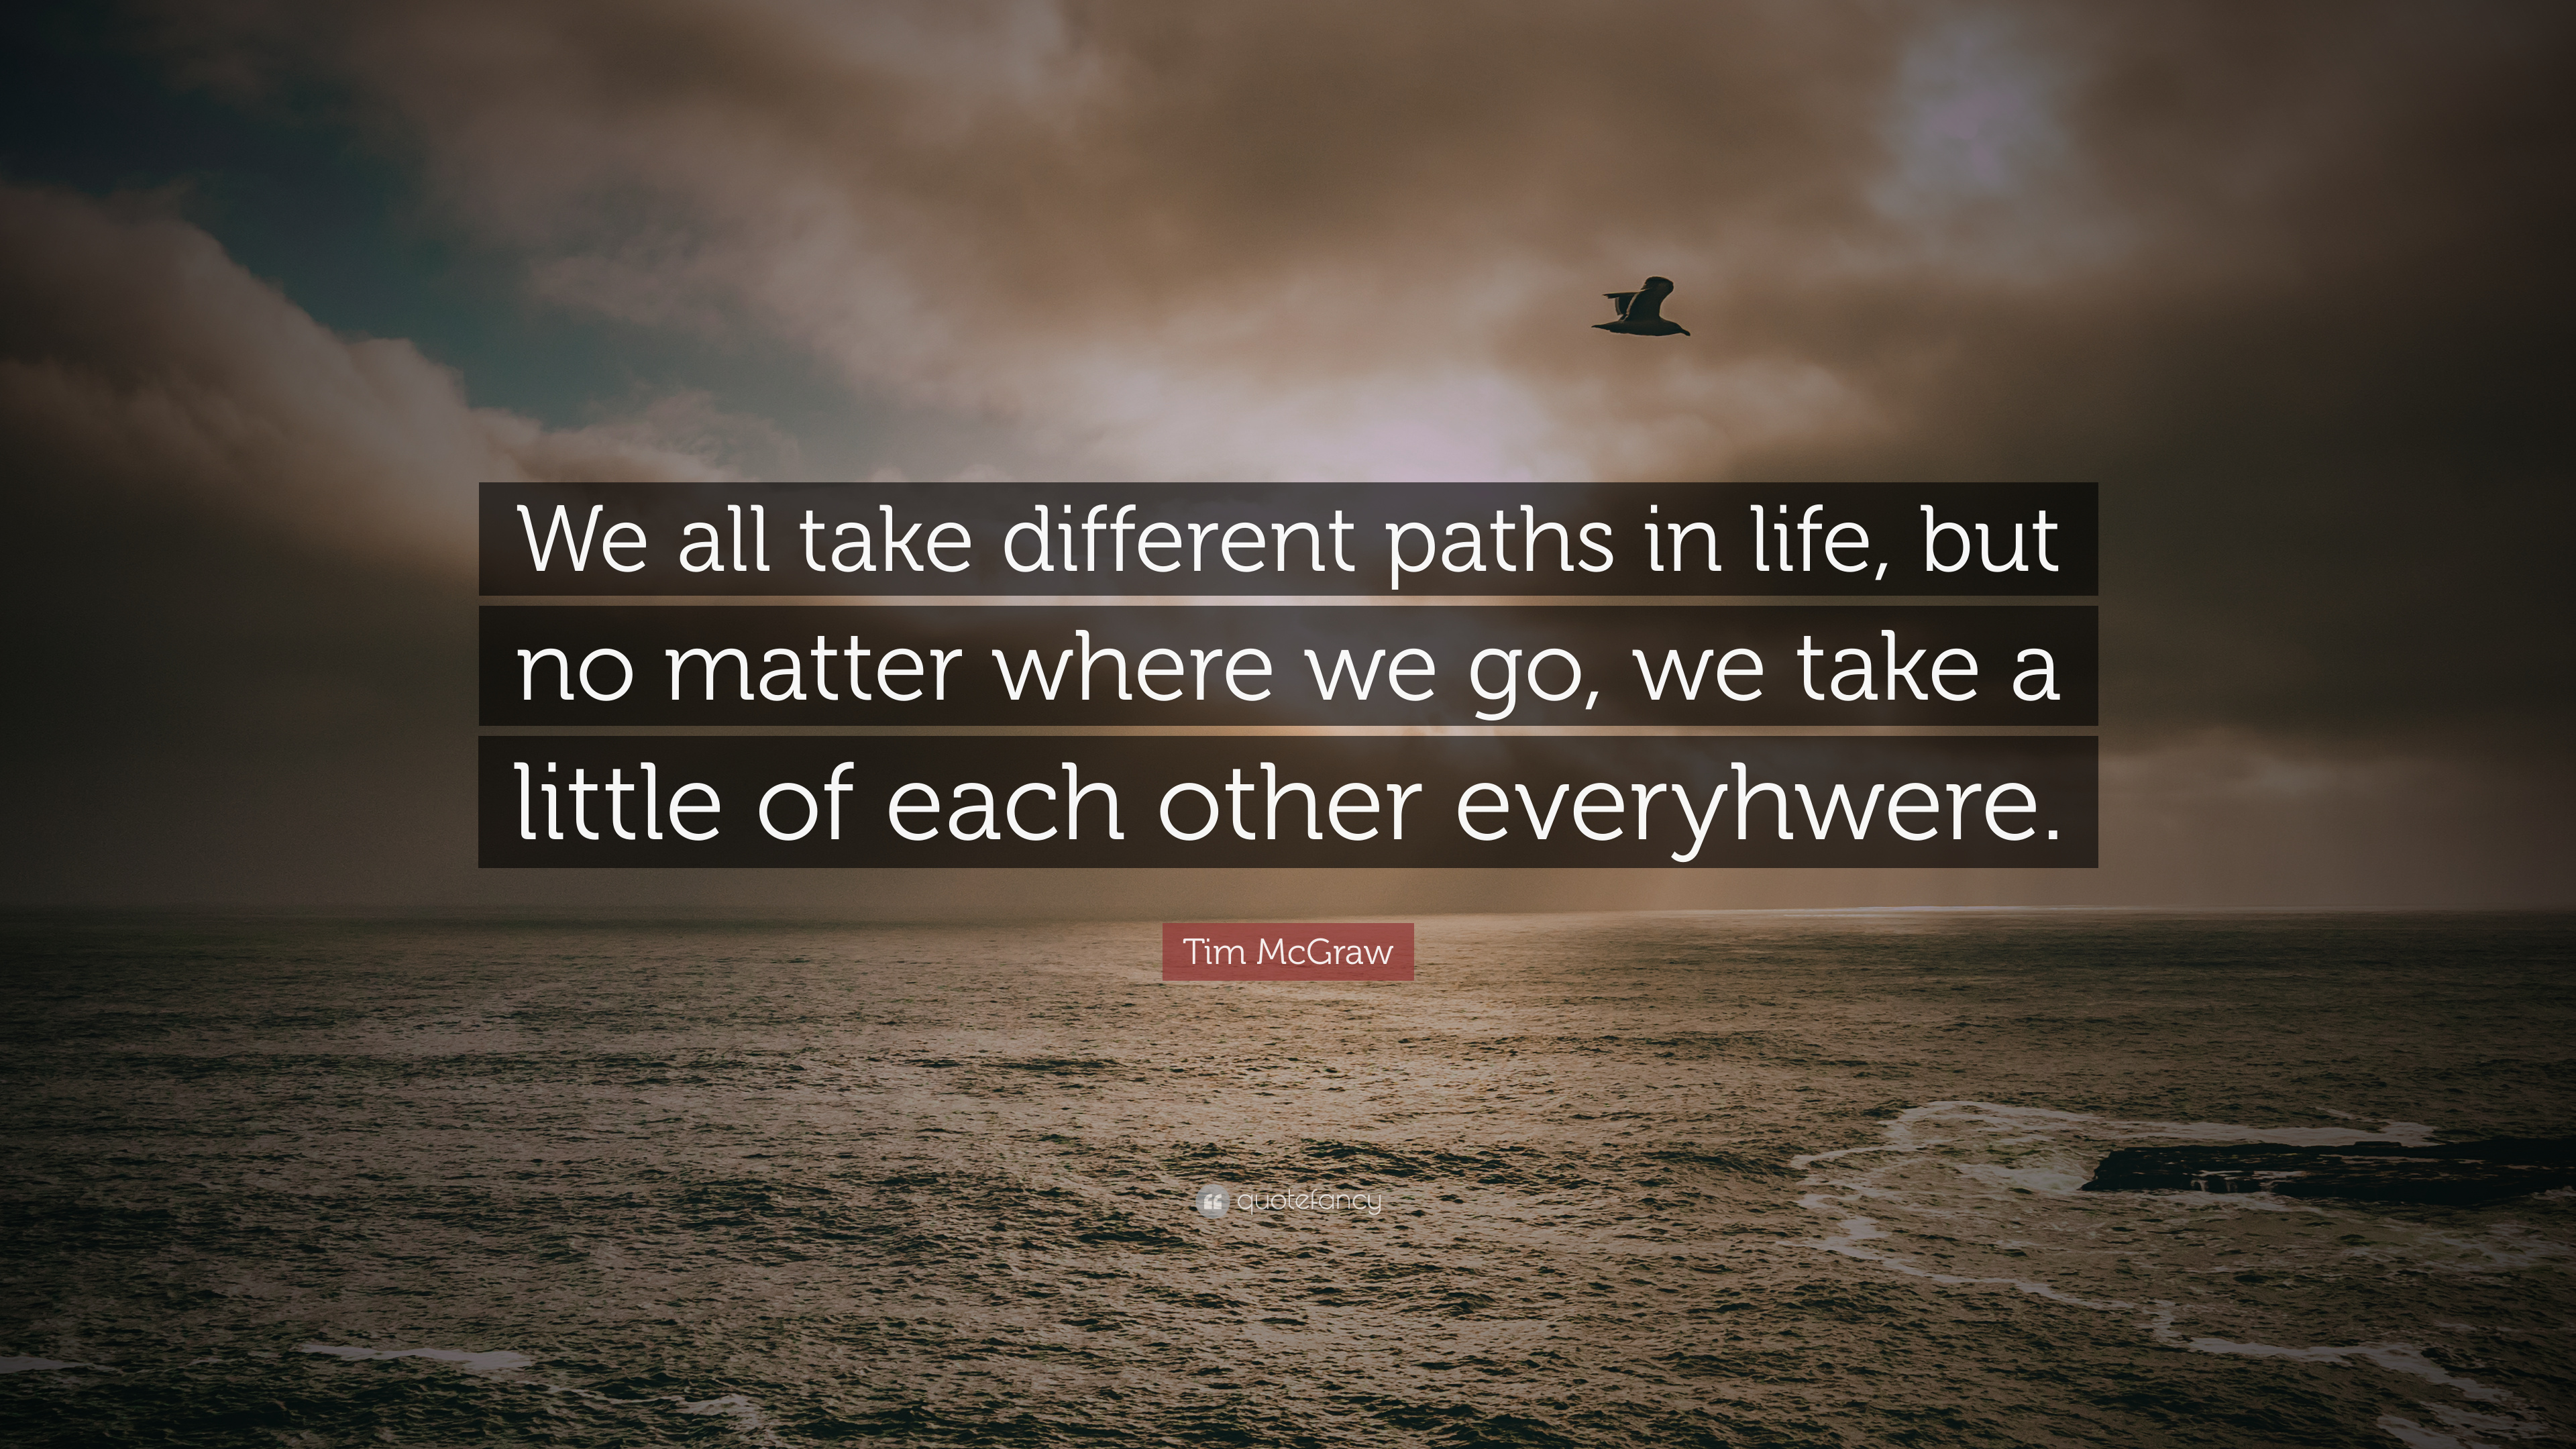 Tim Mcgraw Quote We All Take Different Paths In Life But No